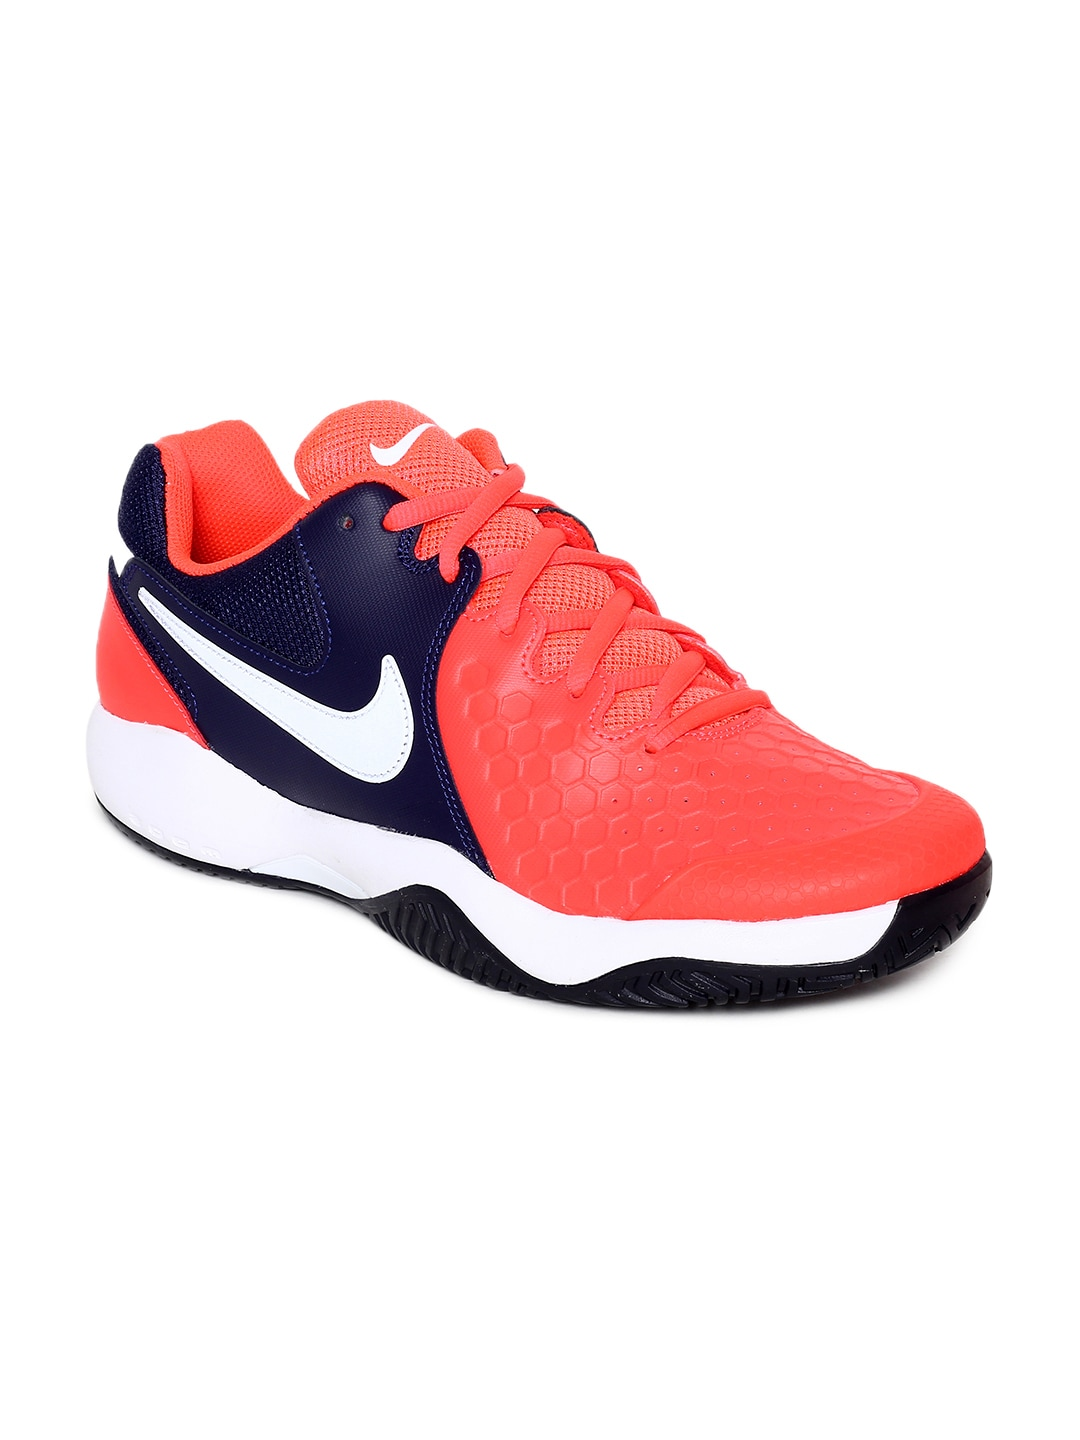 e3d480541df8 Nike Sport Shoe - Buy Nike Sport Shoes At Best Price Online